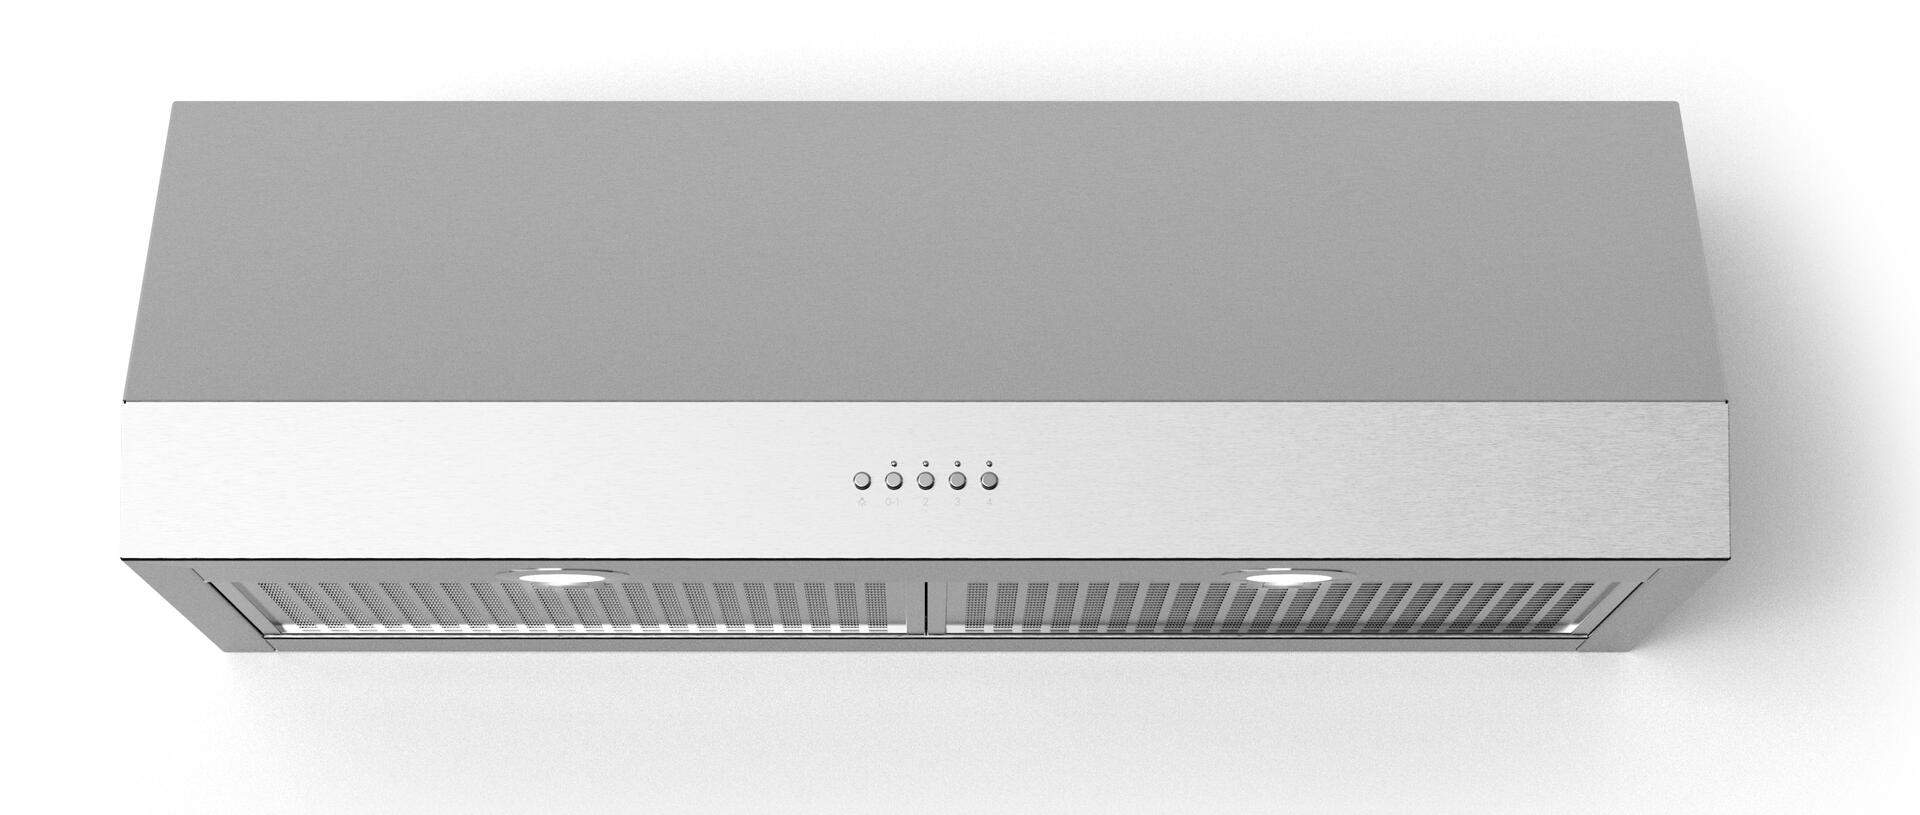 Forte Lucca40 40 Lucca Under Cabinet Range Hood With 560 Cfm Led Lighting In Stainless Steel Walmart Com Walmart Com